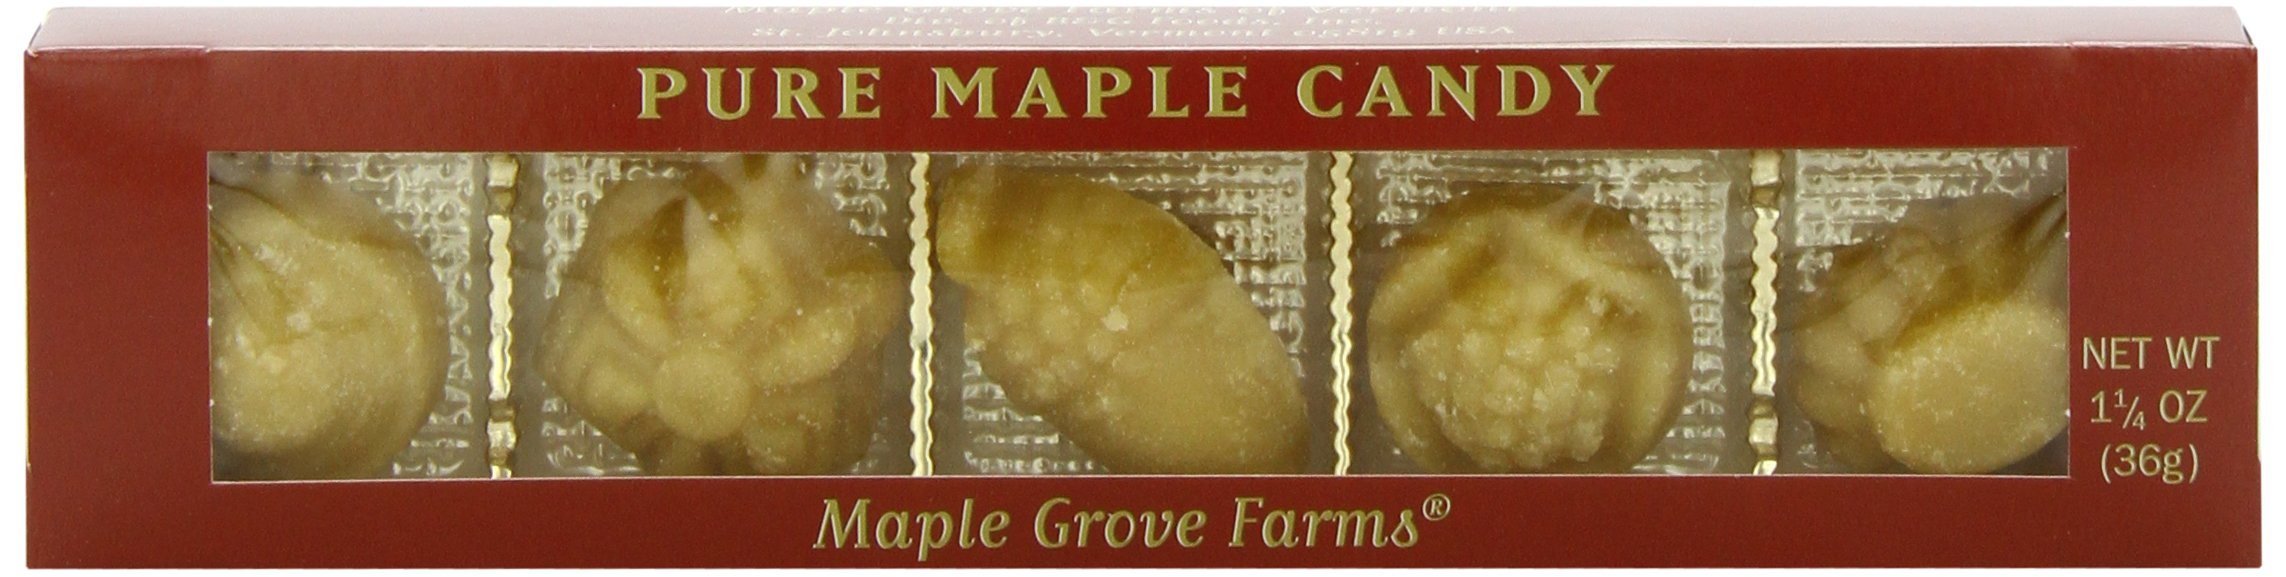 Maple Grove Farms Pure Maple Candy, Pocket Pack Fancies, 1.25 Ounce (Pack of 20)